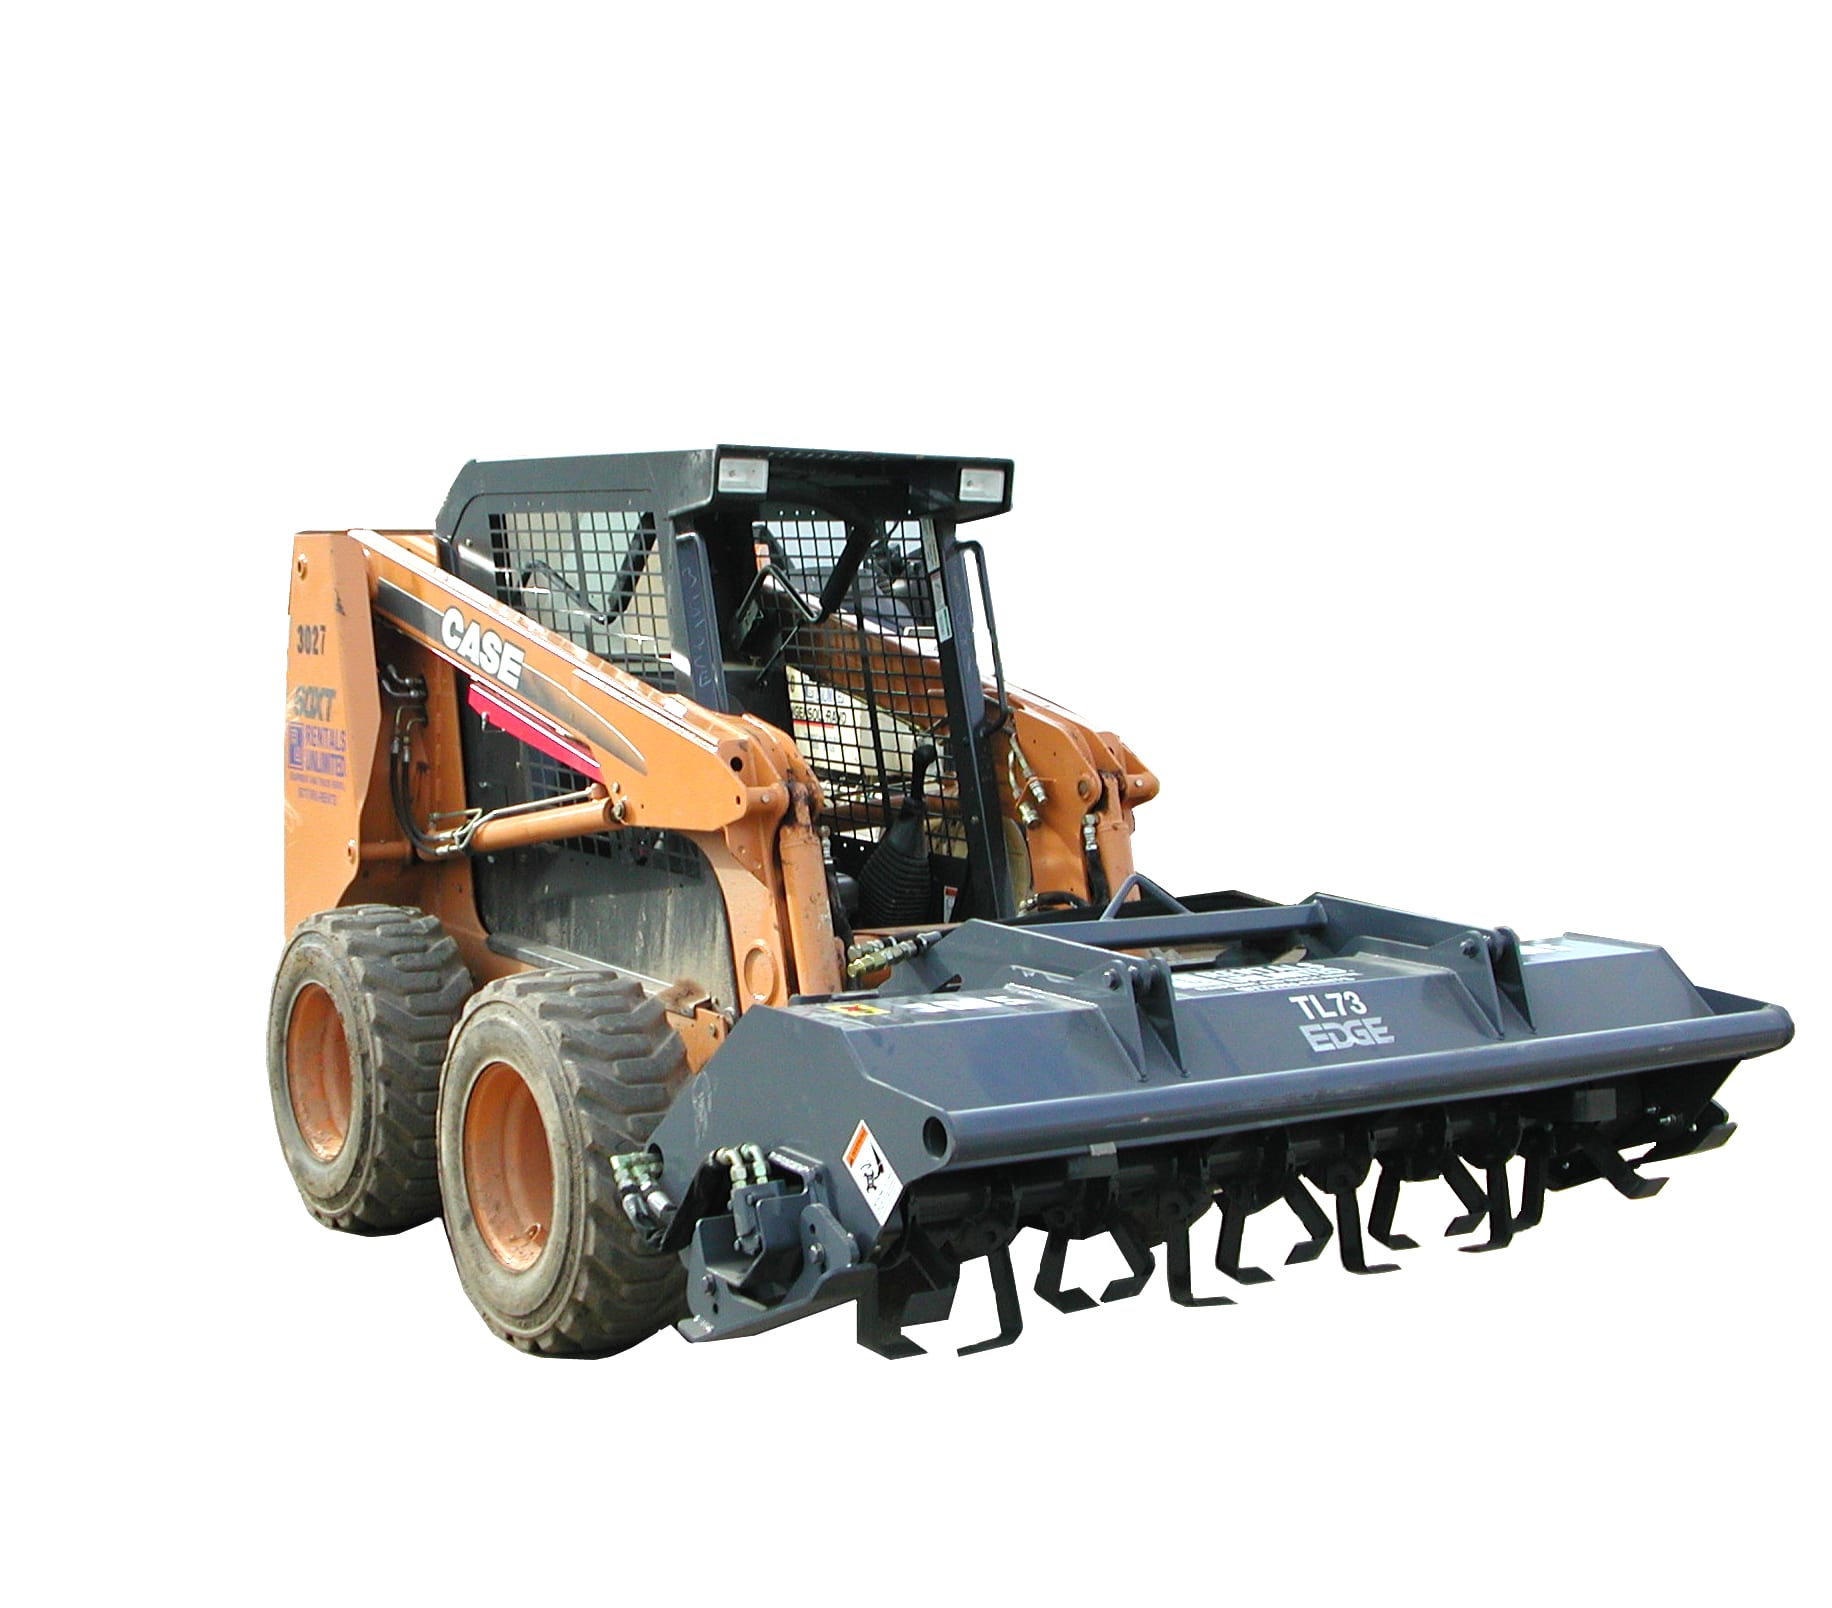 Skidsteer Attachments Archives - Rentals Unlimited